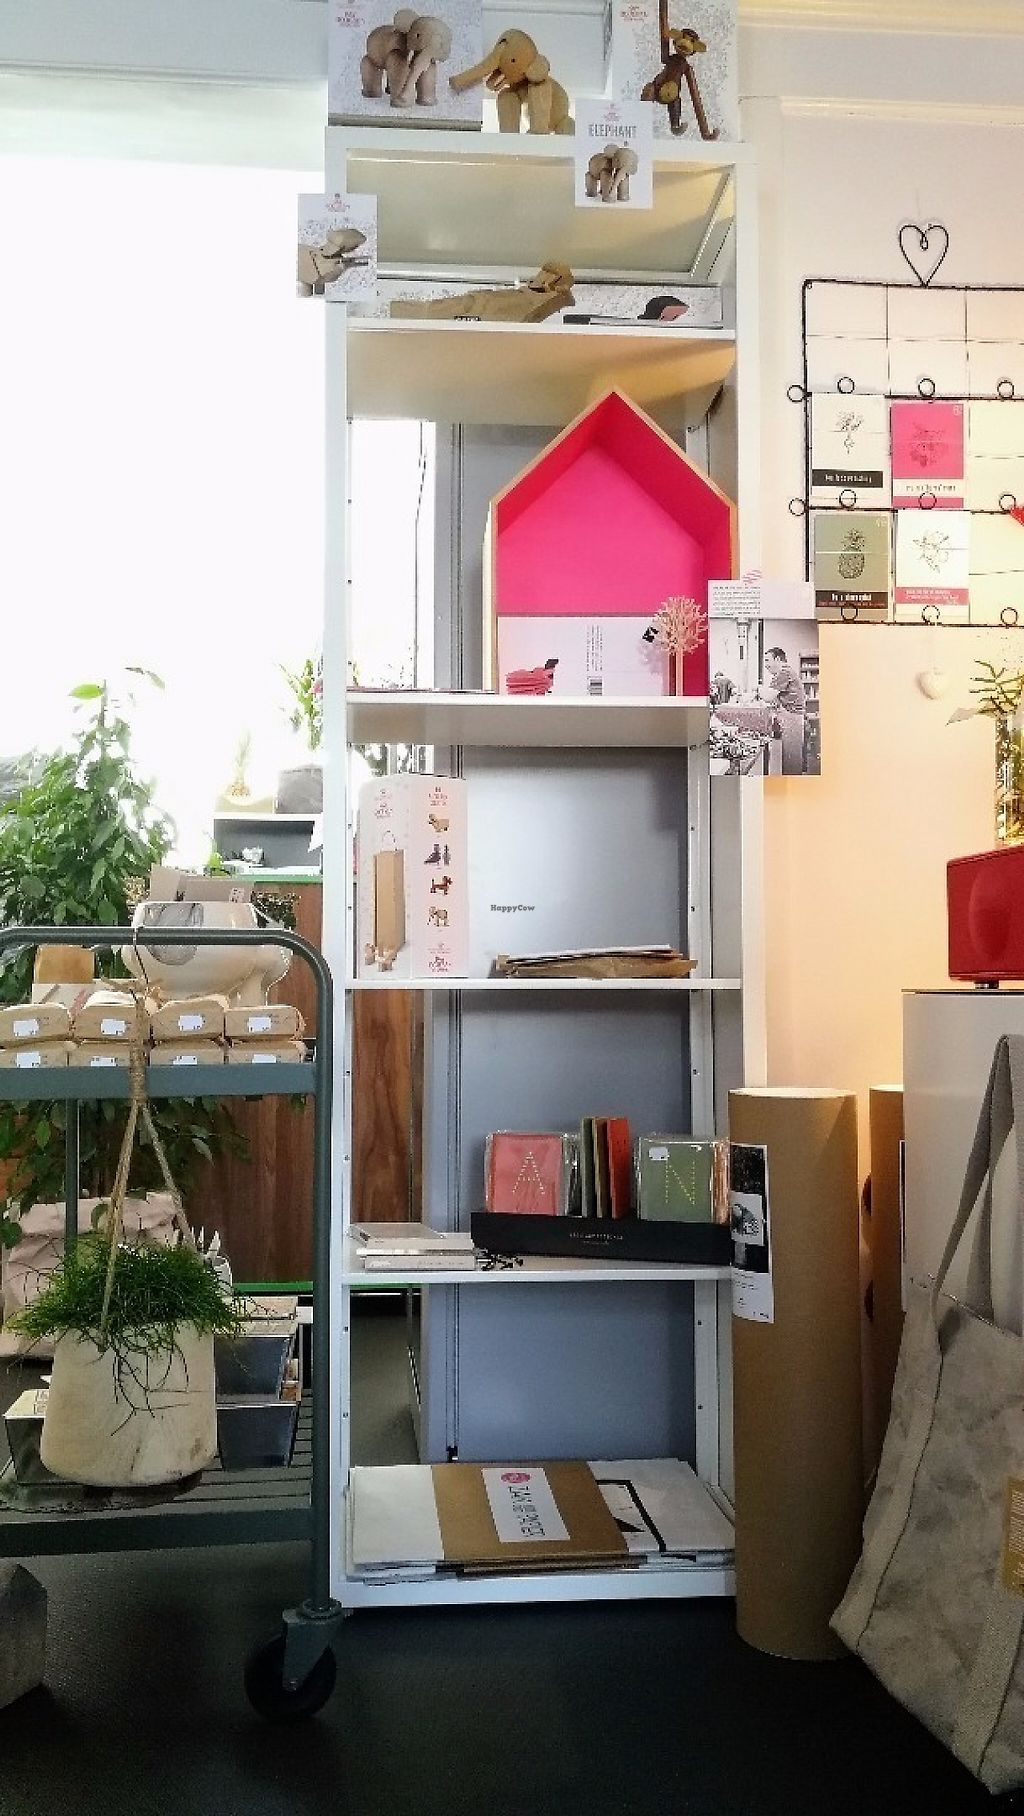 """Photo of tAK  by <a href=""""/members/profile/tAKplantbased"""">tAKplantbased</a> <br/>tAK 